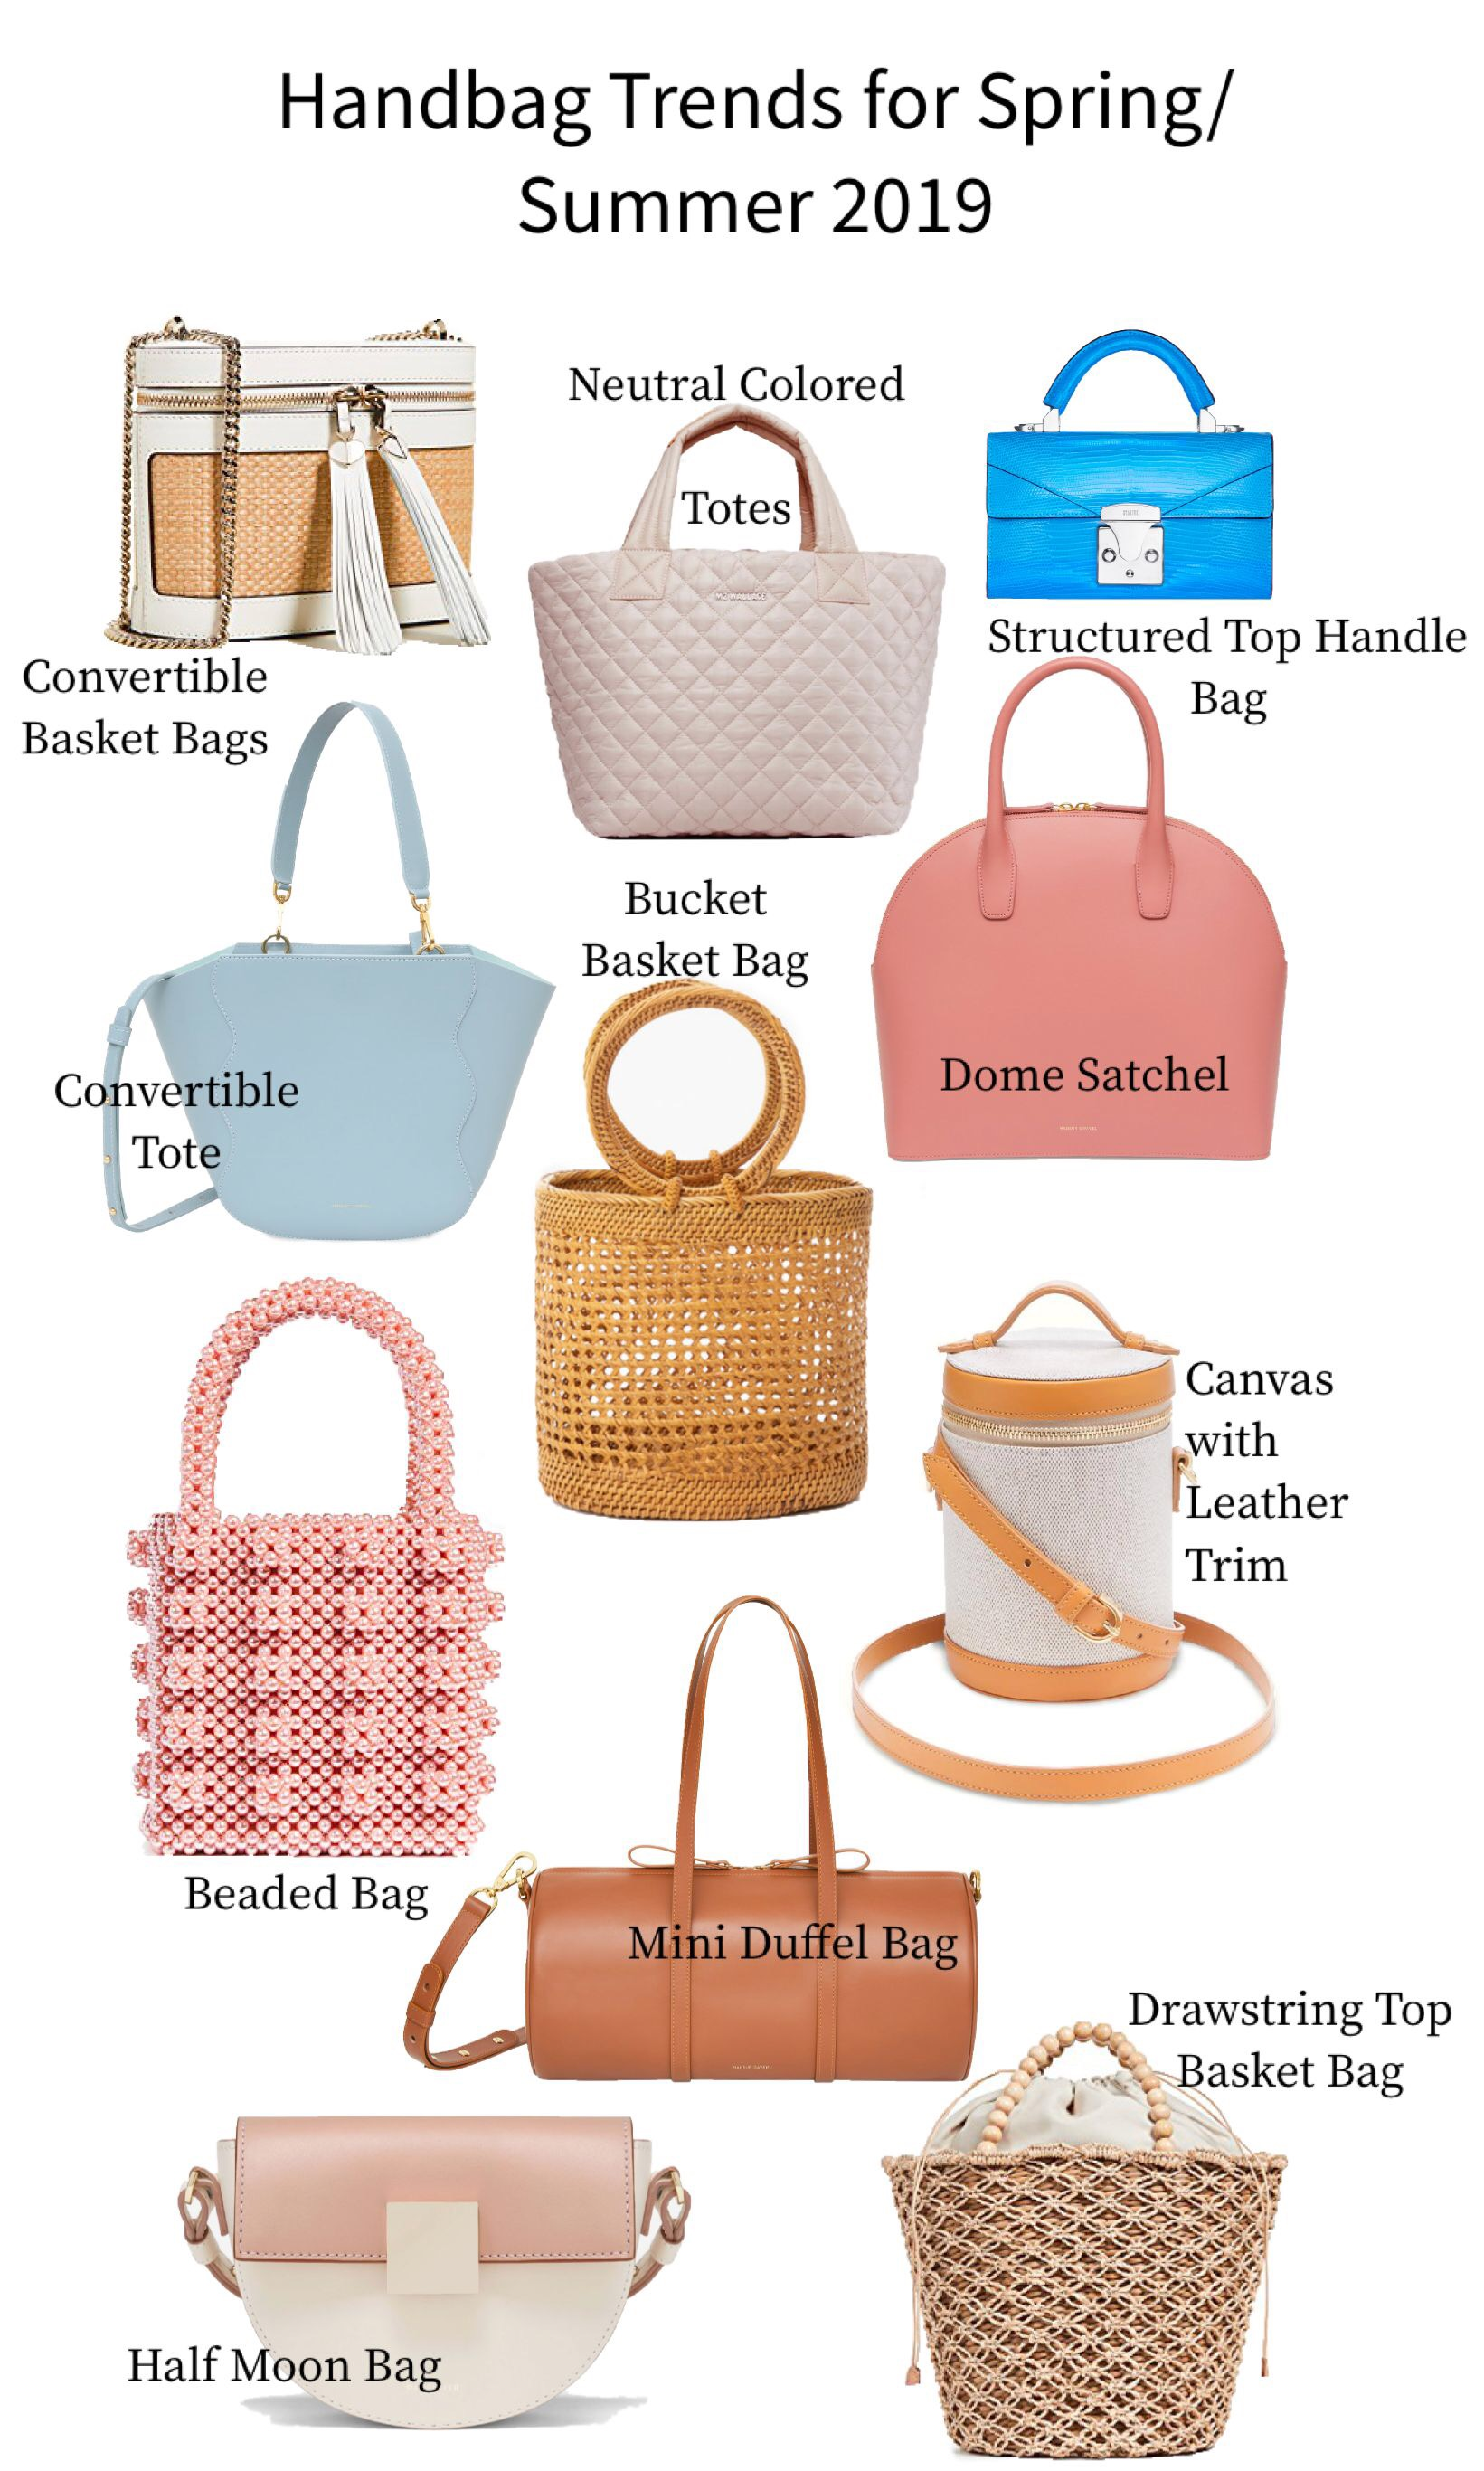 Handbag Trends for Spring and Summer 2019